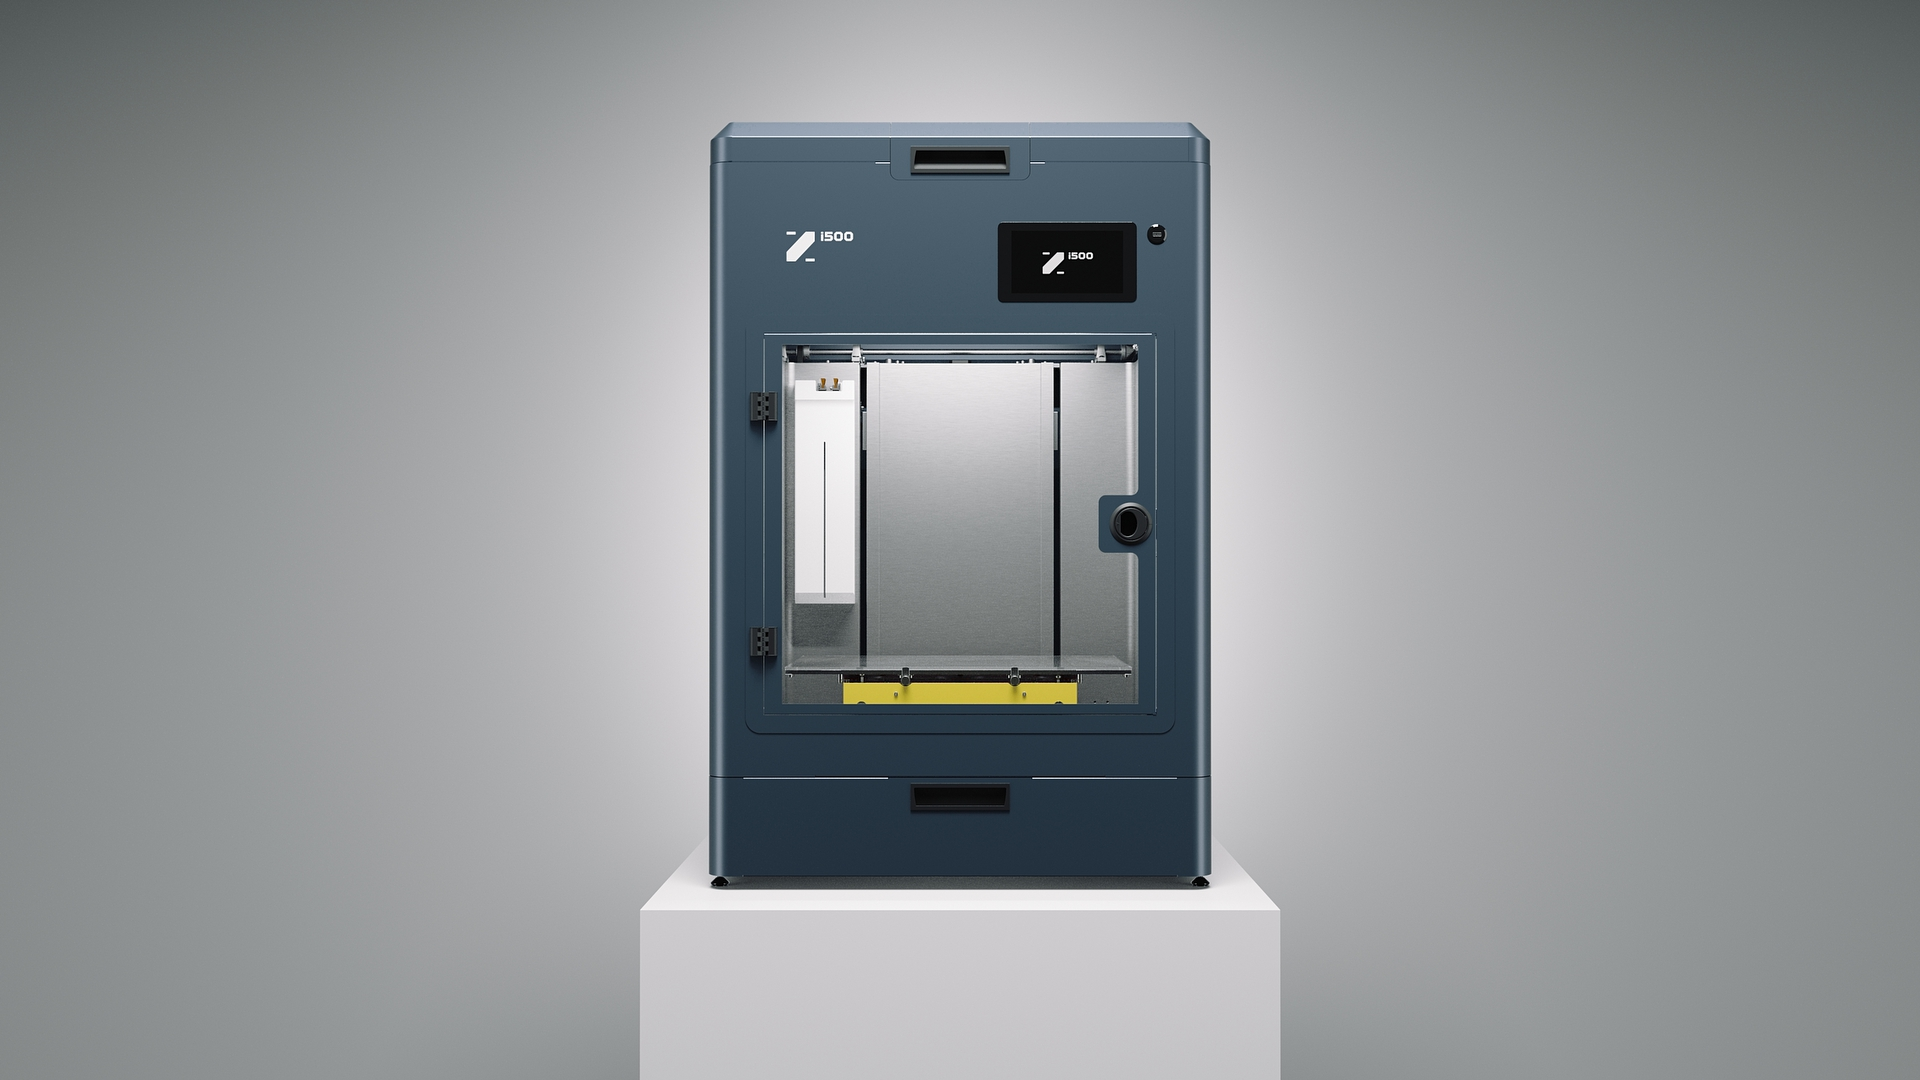 Render of the Zmorph i500 3D printer. Image via Zmorph.